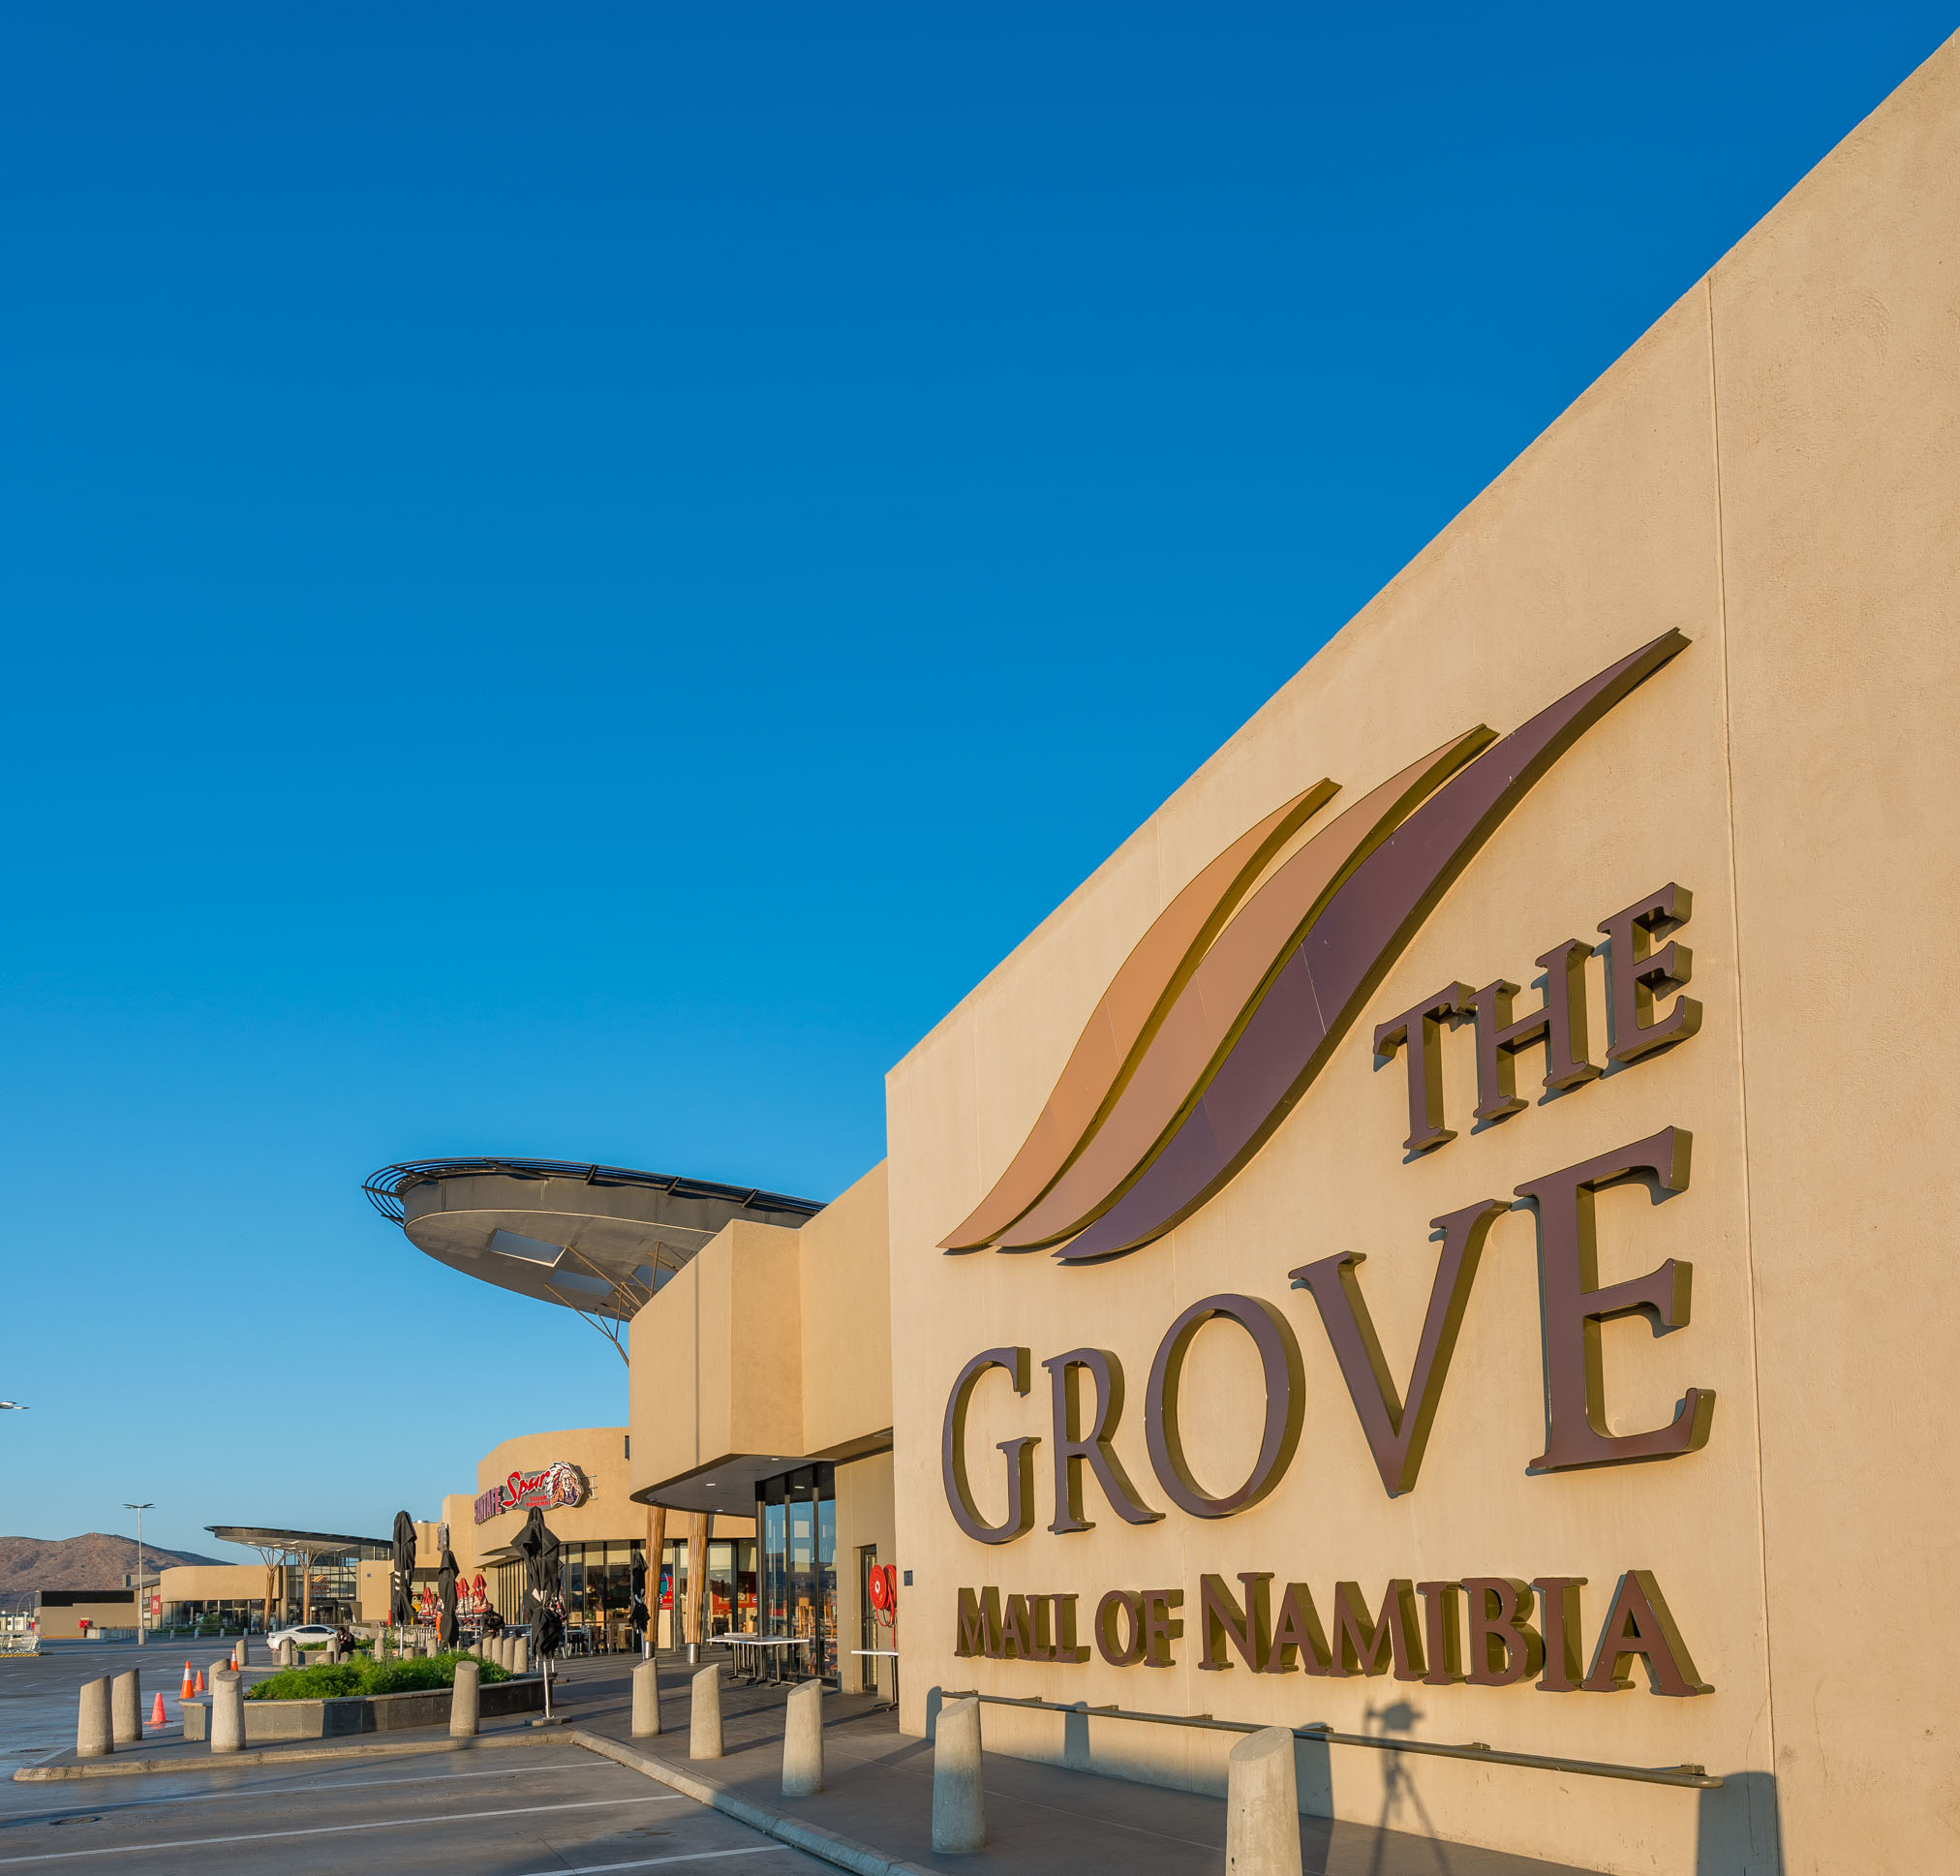 The Grove Mall Of Namibia Atterbury